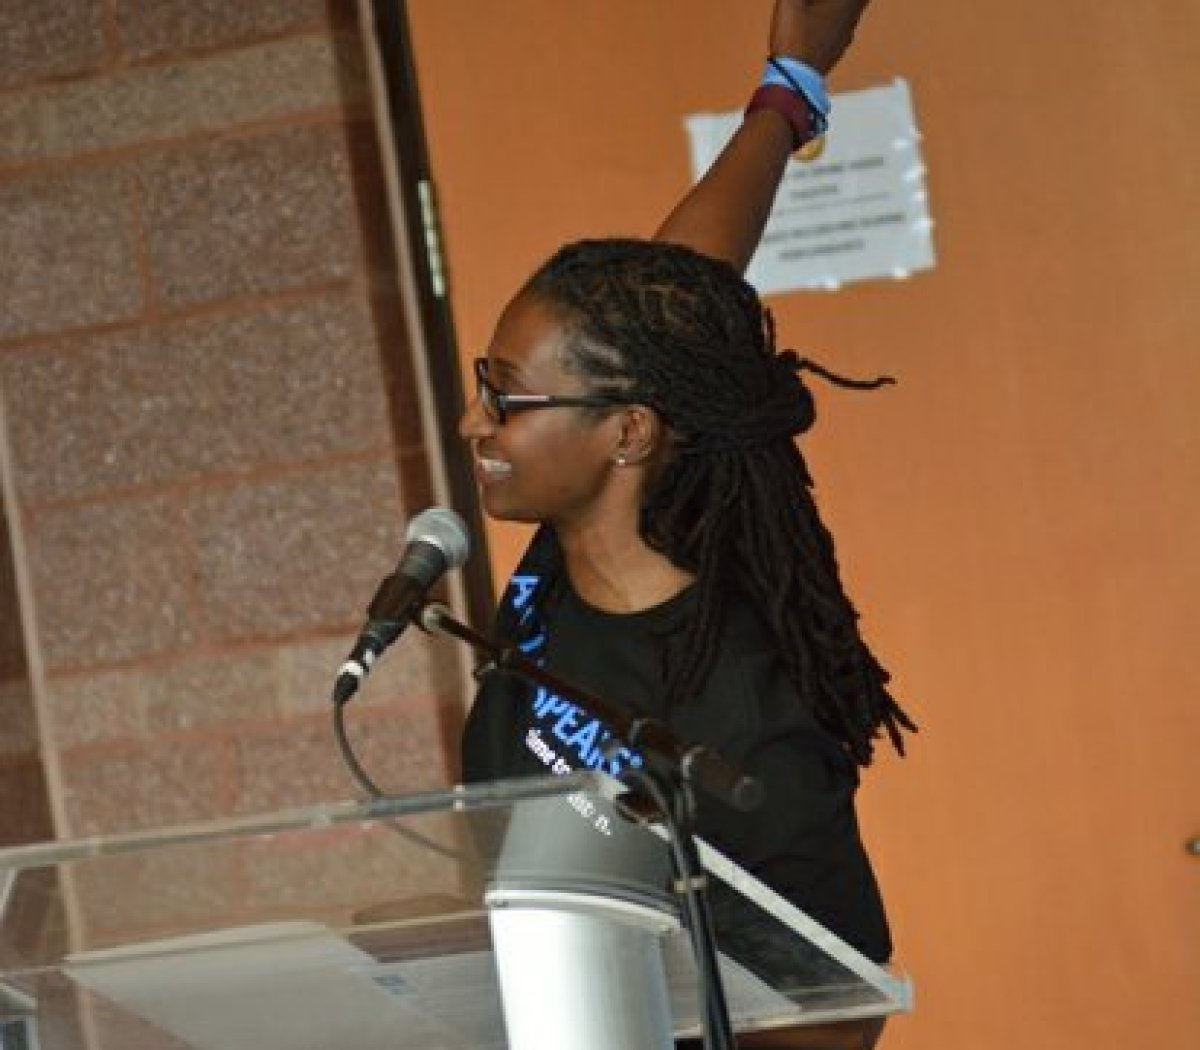 Ward 8 council member LaRuby May throws her hand up to mimmick flipping the light switch during Autism Speaks Light It Up Blue event at the THEARC, Saturday, April 2, 2016 in Southeast. /Photo by Patricia Little @5feet2